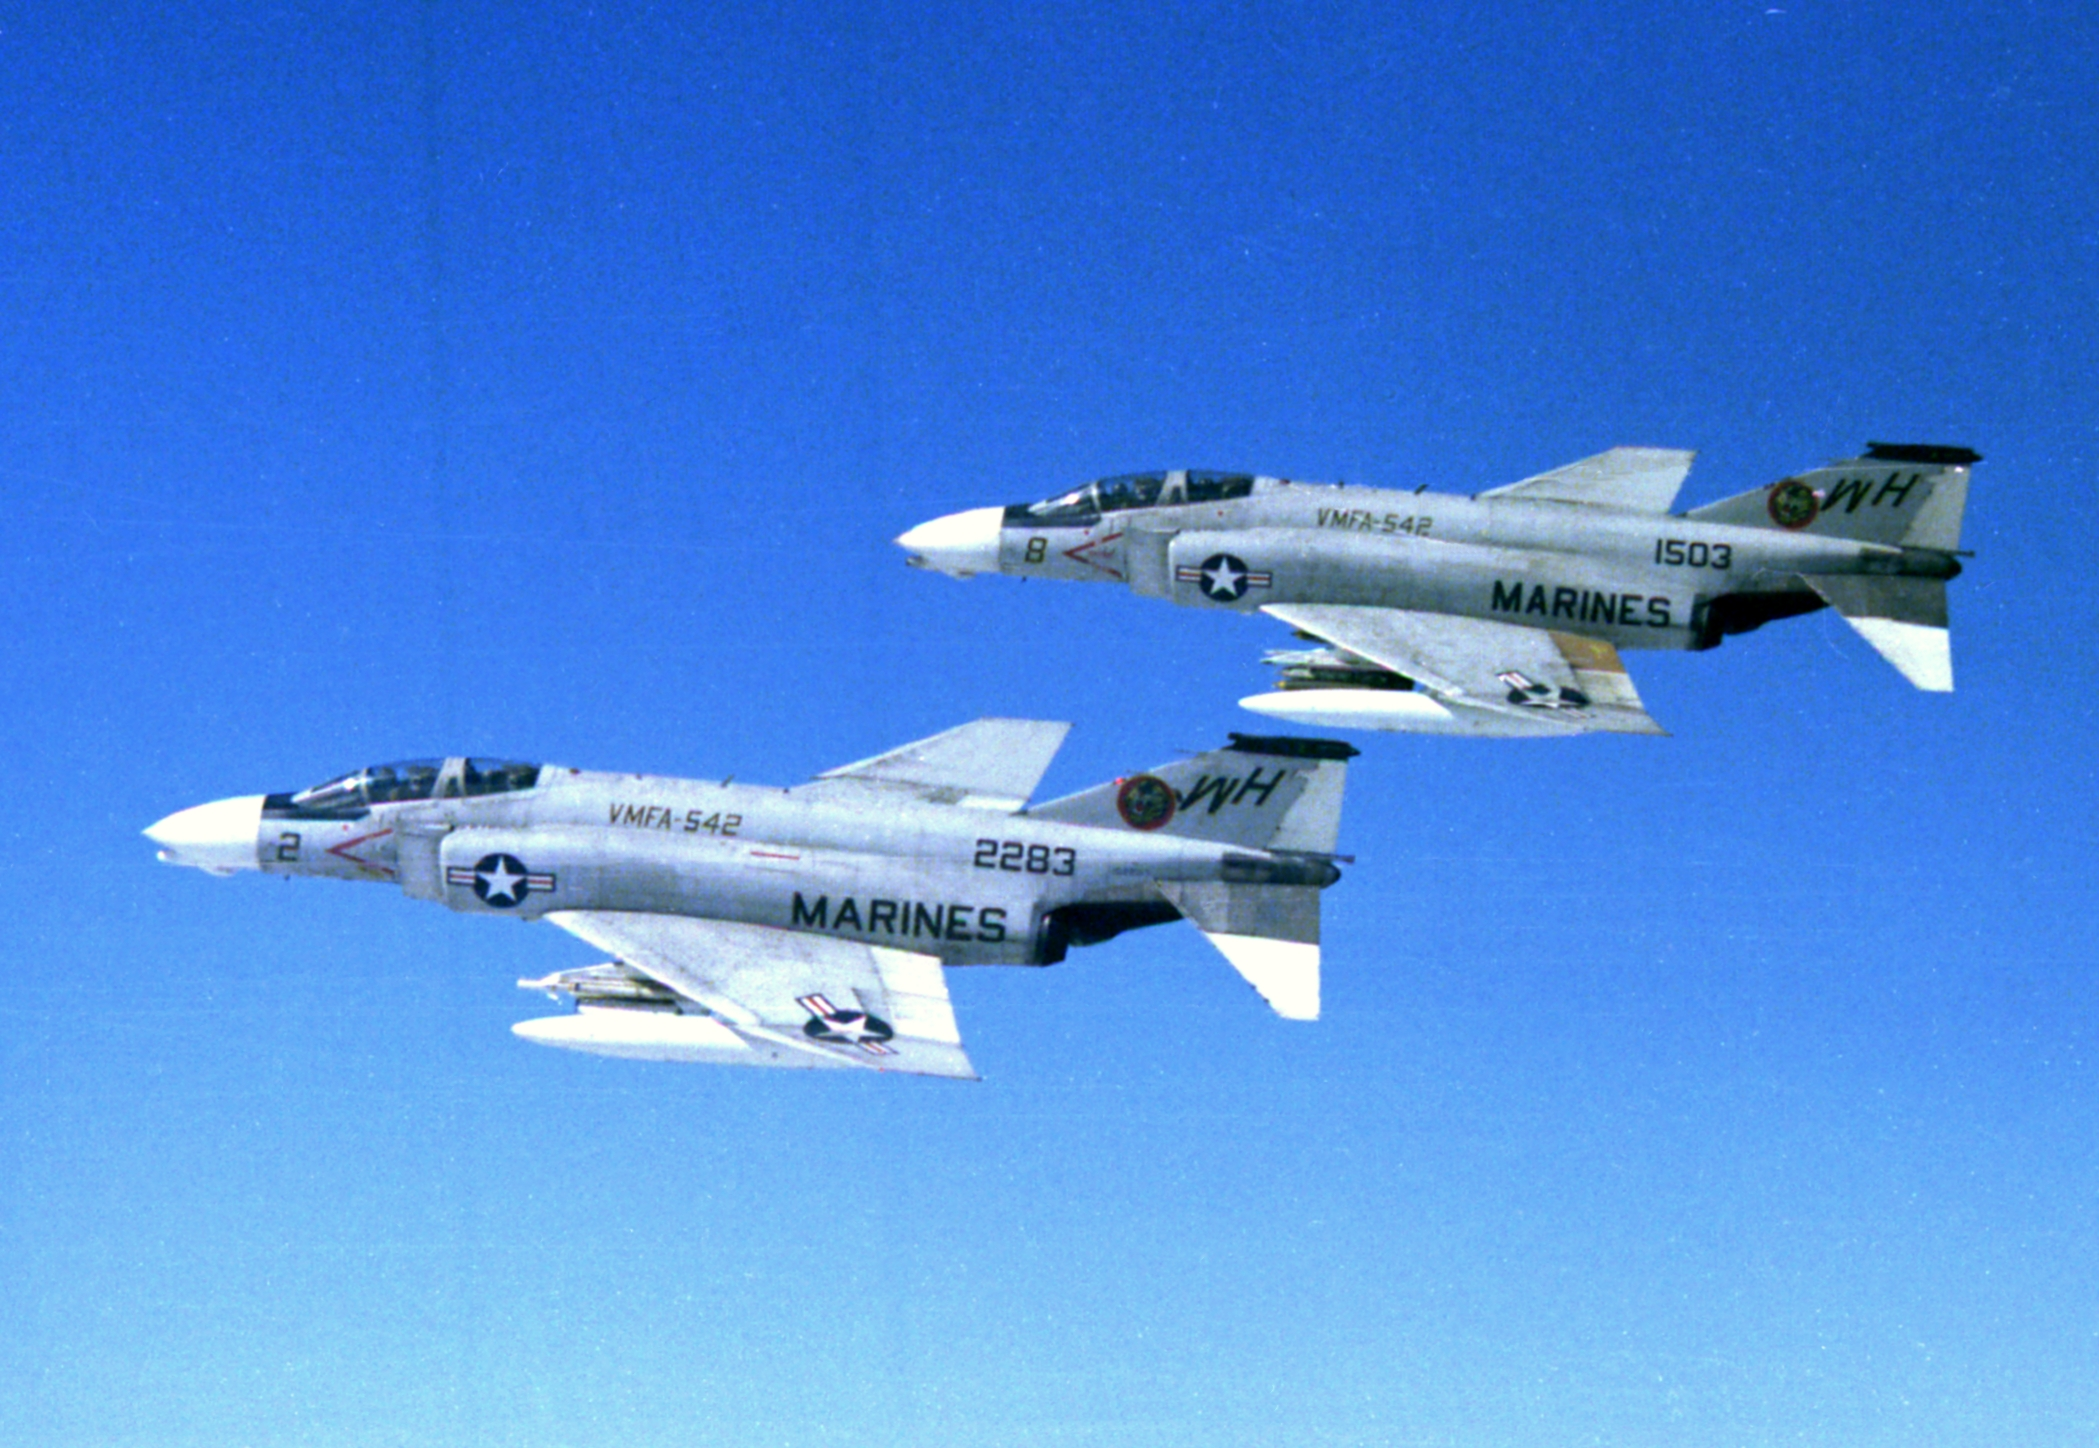 File:F-4Bs VMFA-542 Vietnam Jan1969.jpg